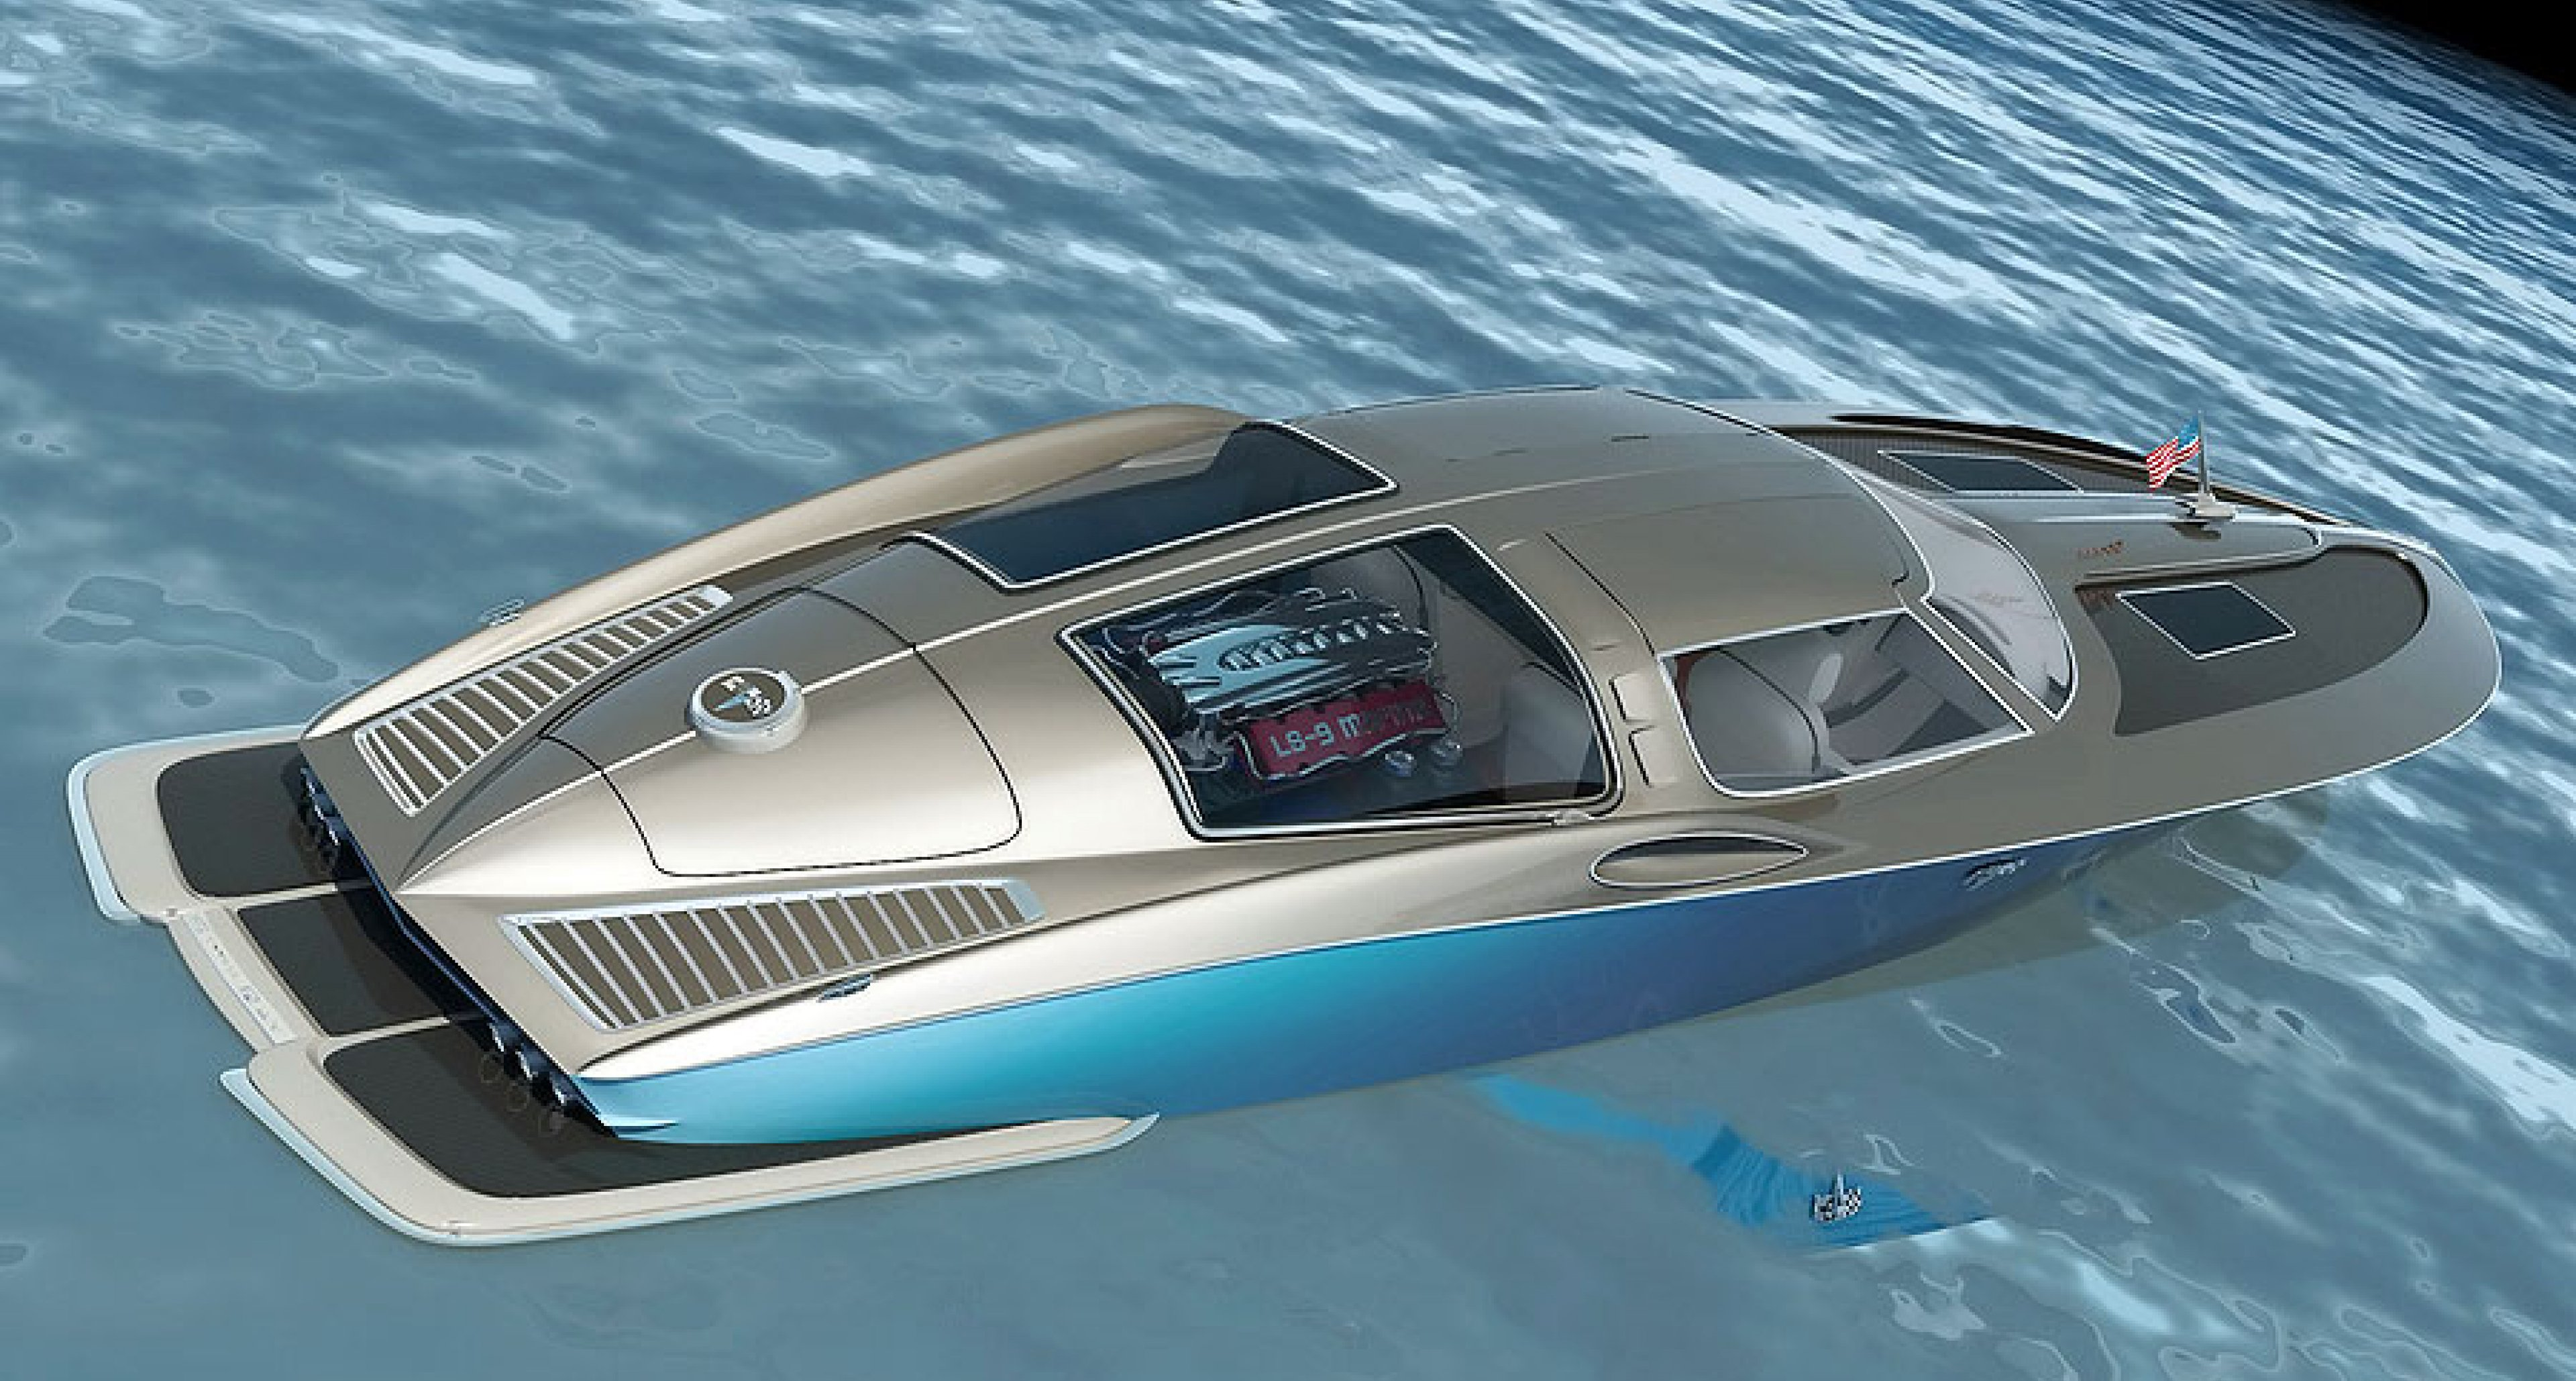 Corvette Boat Concept Muscle On The Mediterranean